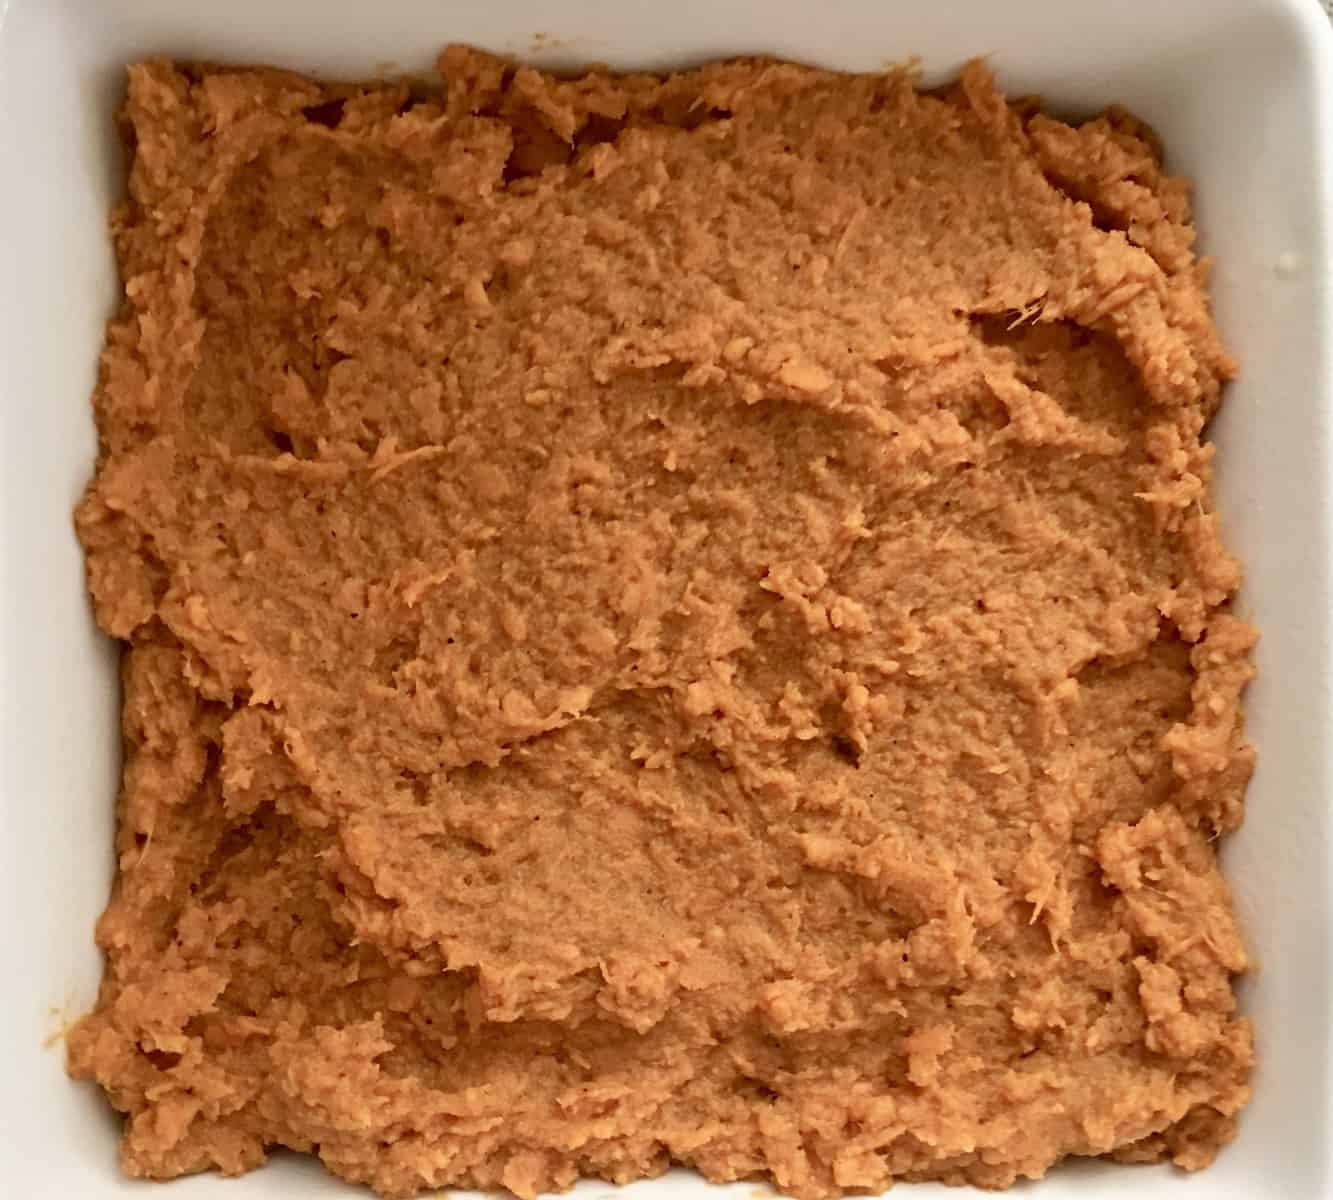 mashed sweet potatoes spread in a baking dish